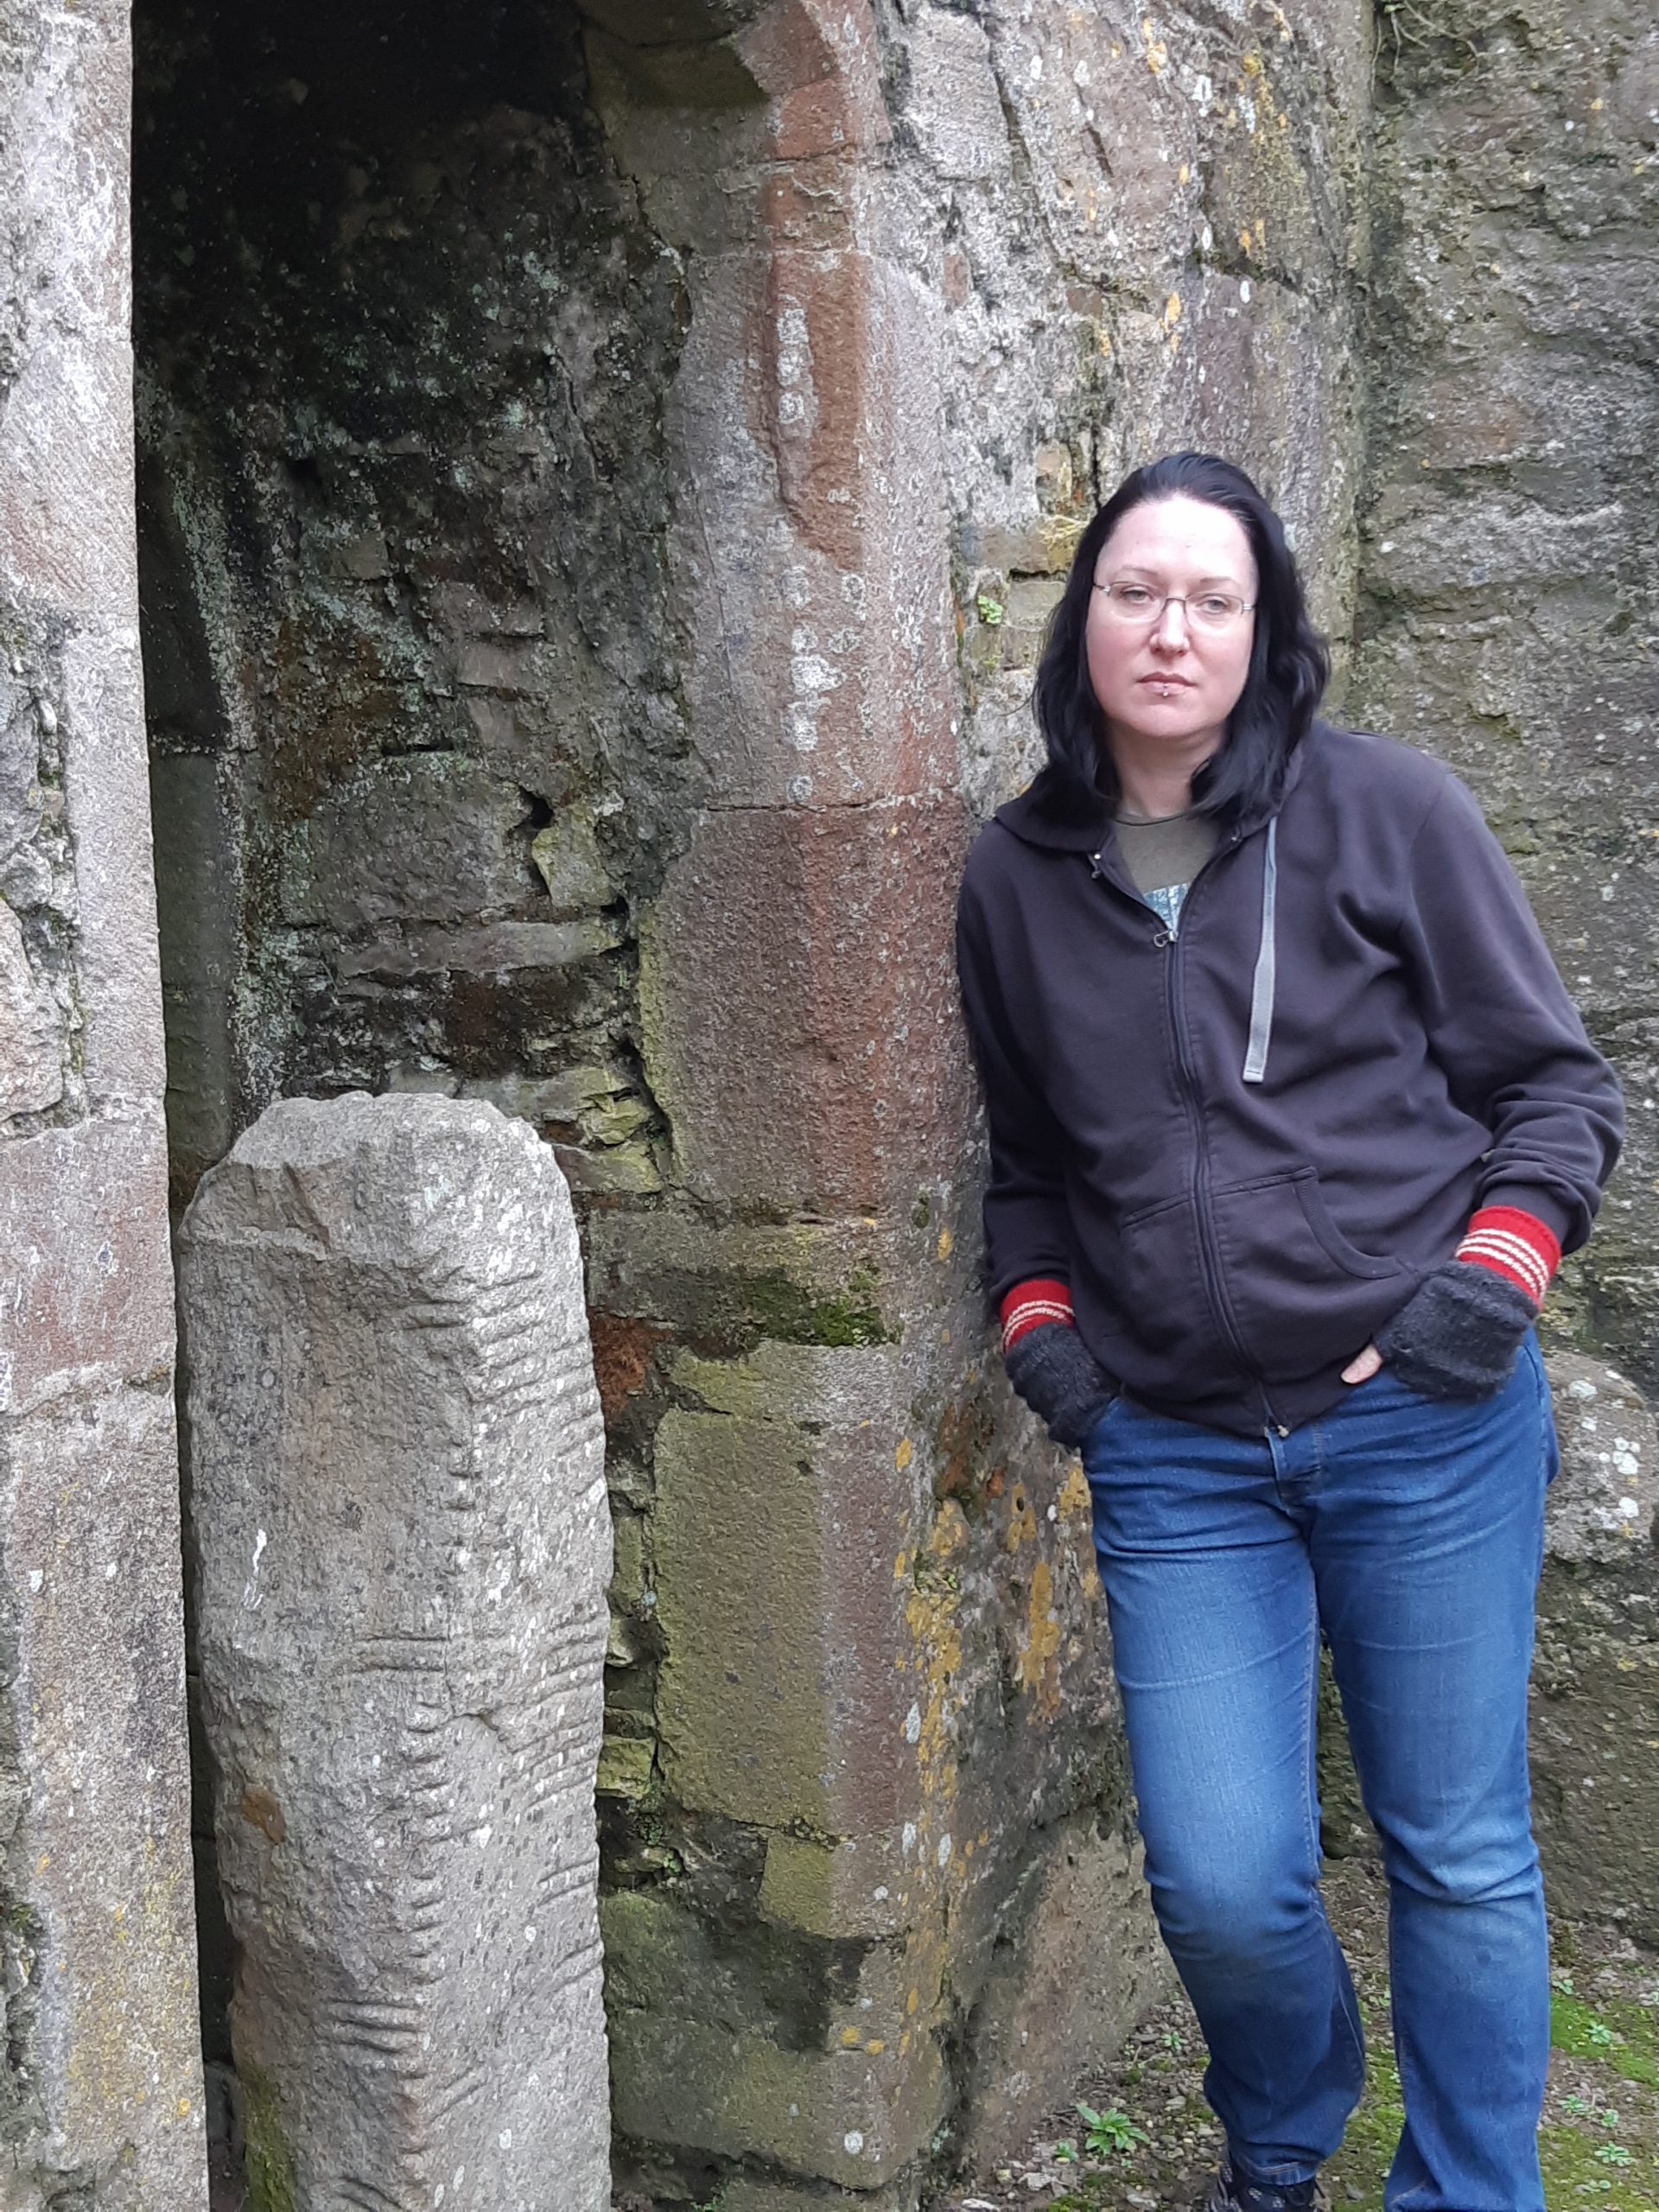 Lora O'Brien Ogham Stone - Irish Author and Guide